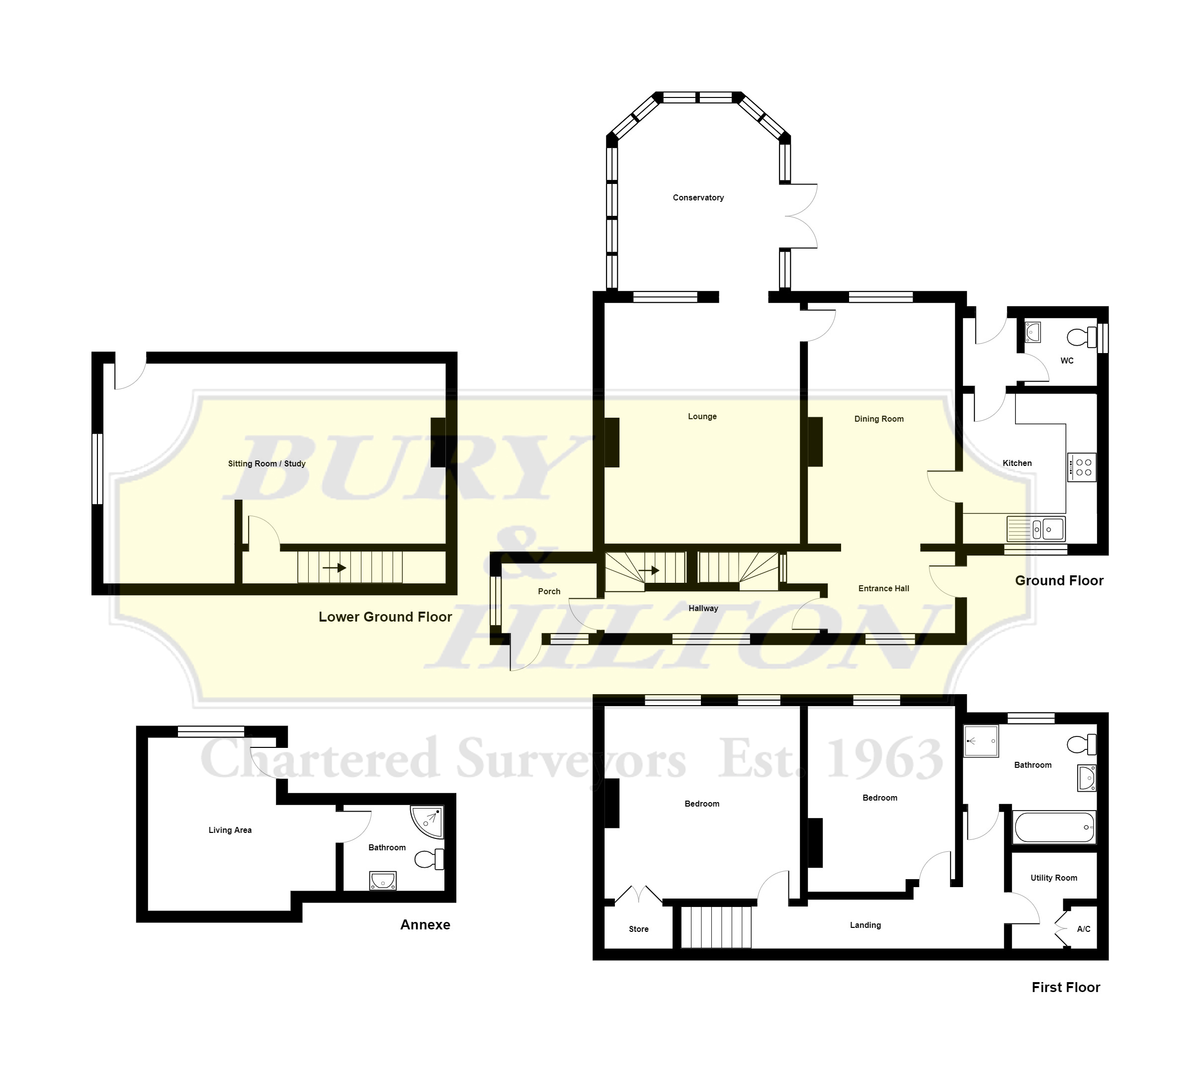 Canal Cottage, Denford, Staffordshire floorplan